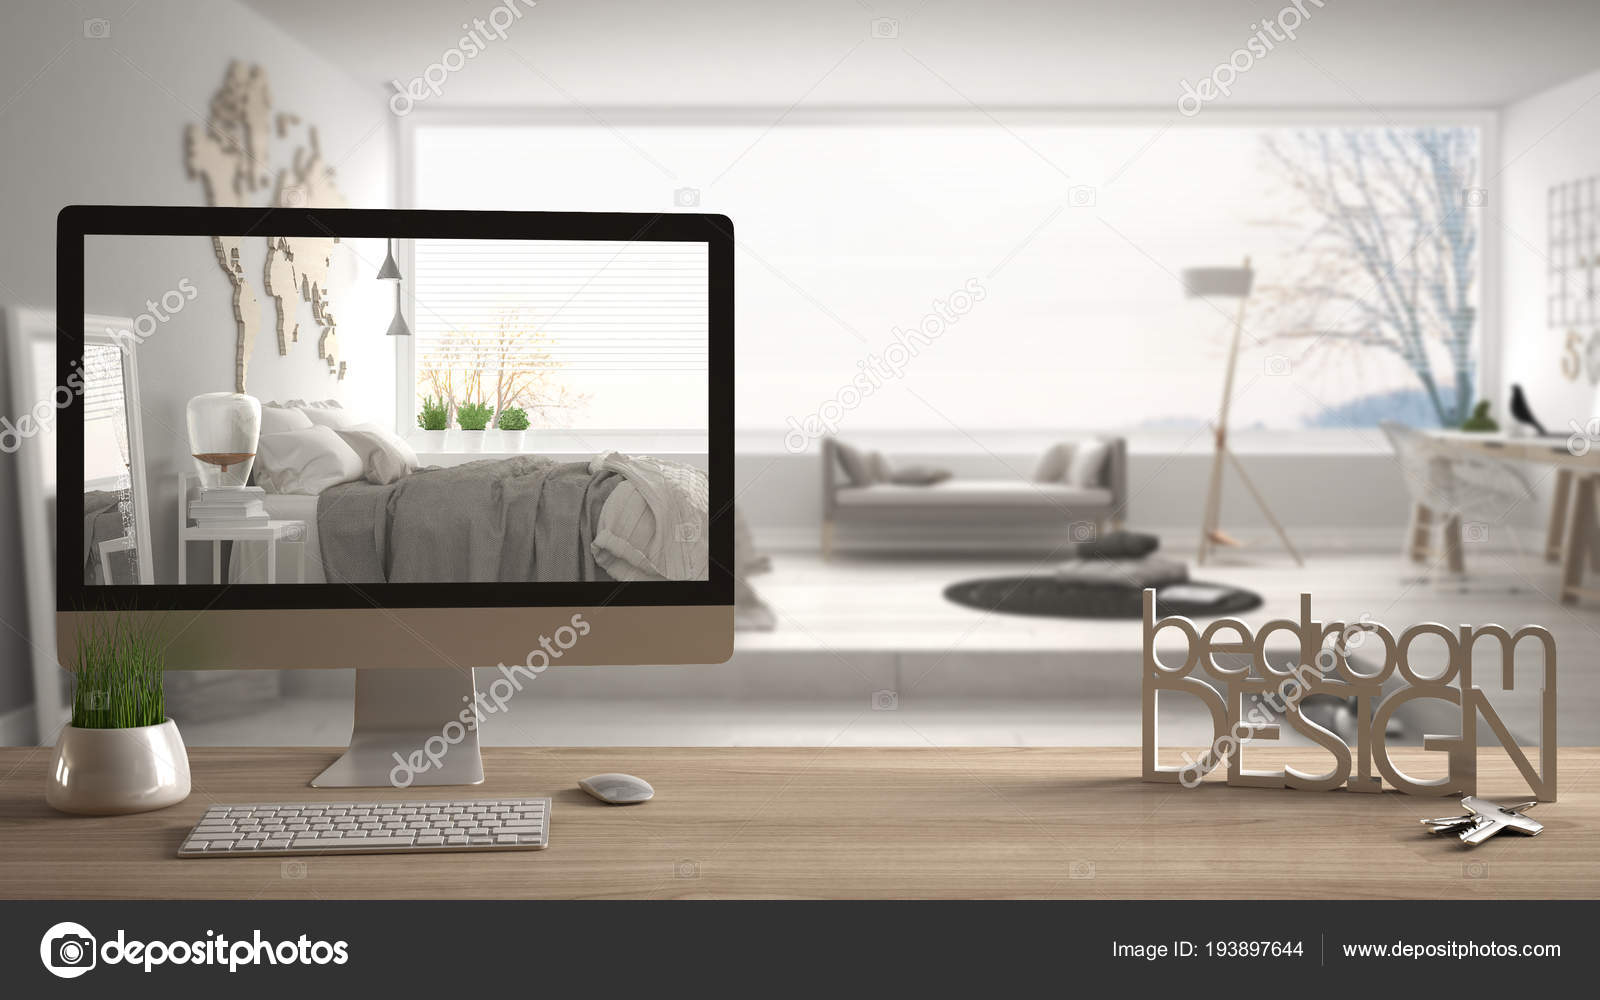 Architect Designer Project Concept Wooden Table With Keys 3d Letters Making The Words Bedroom Design And Desktop Showing Draft Blurred Space In The Background Interior Design Stock Photo C Archiviz 193897644